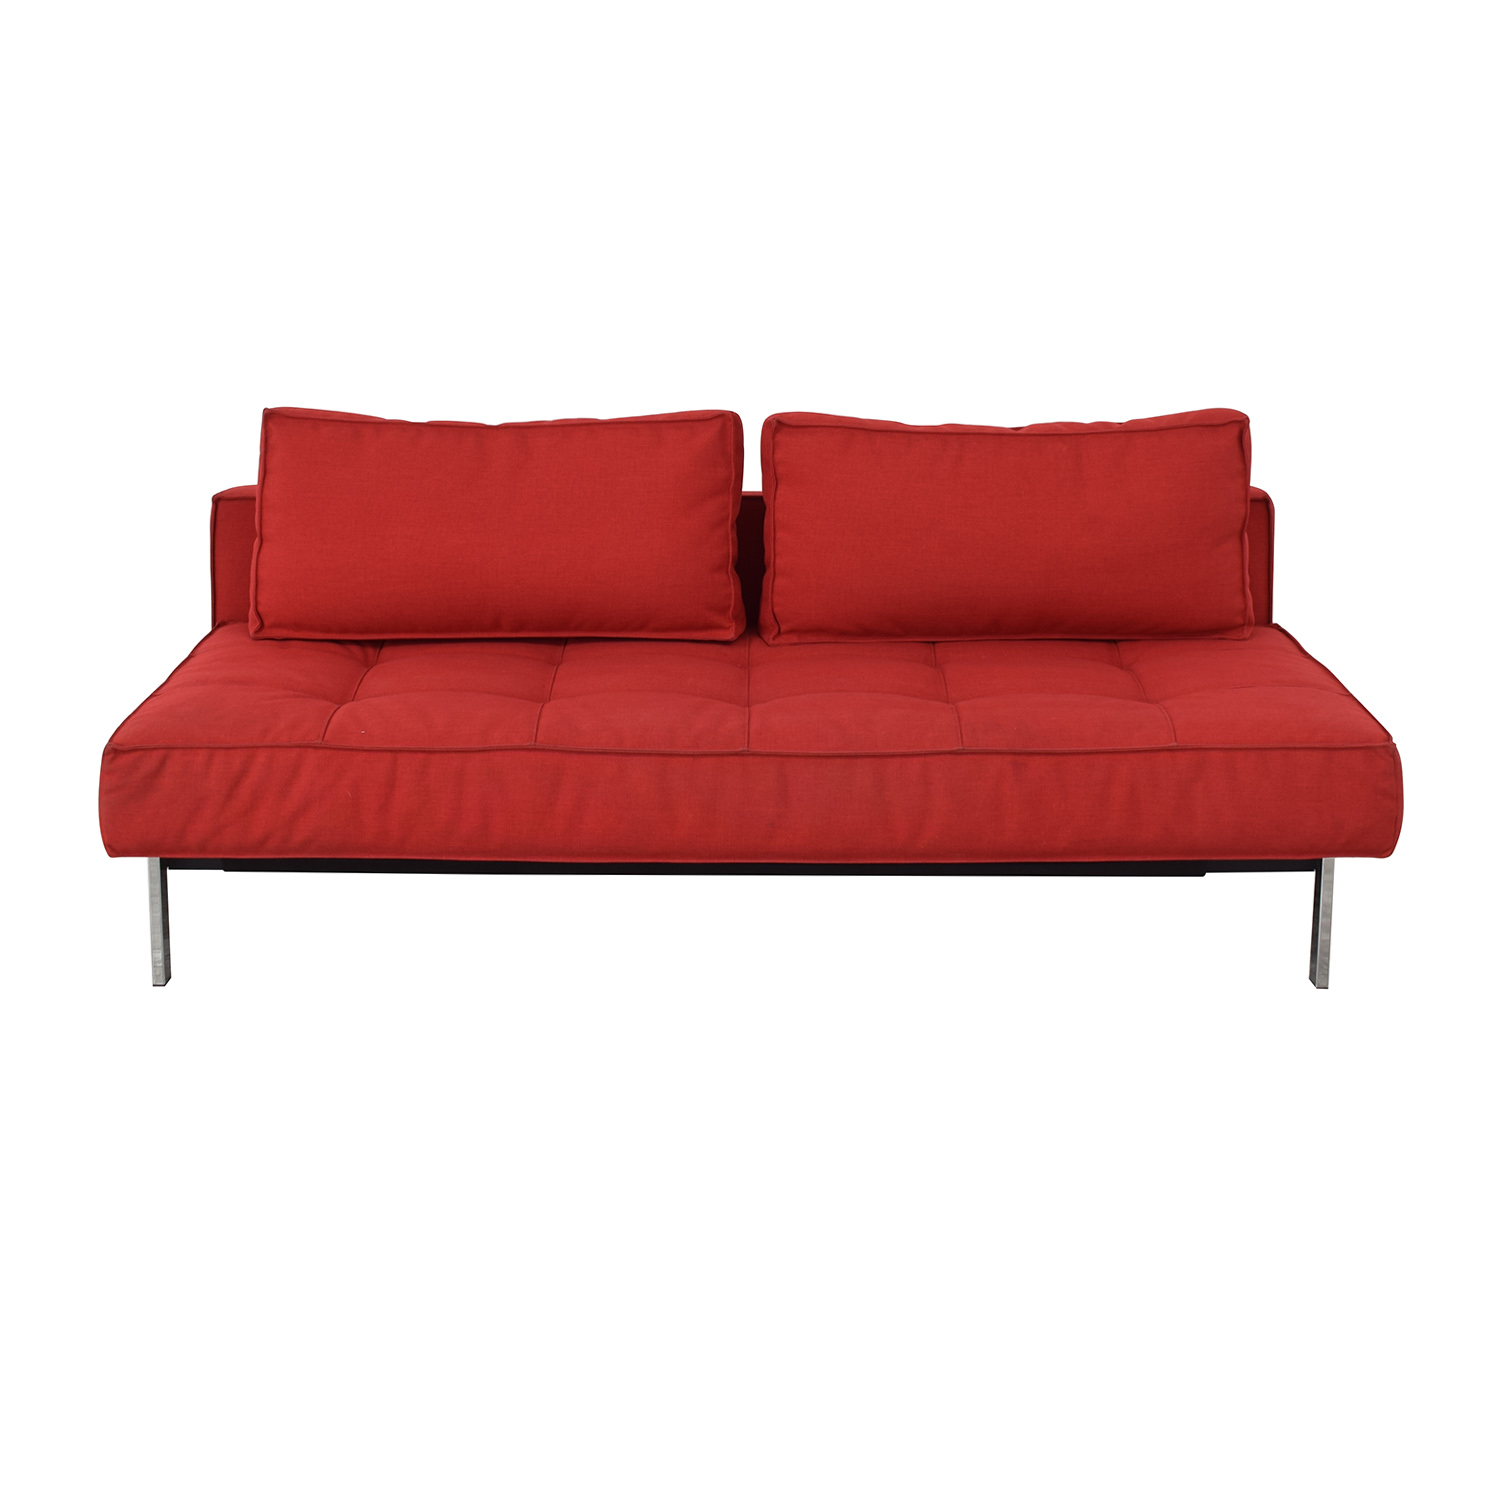 Innovation Living Innovation Living Red Tufted Twin Sleeper Sofa dimensions